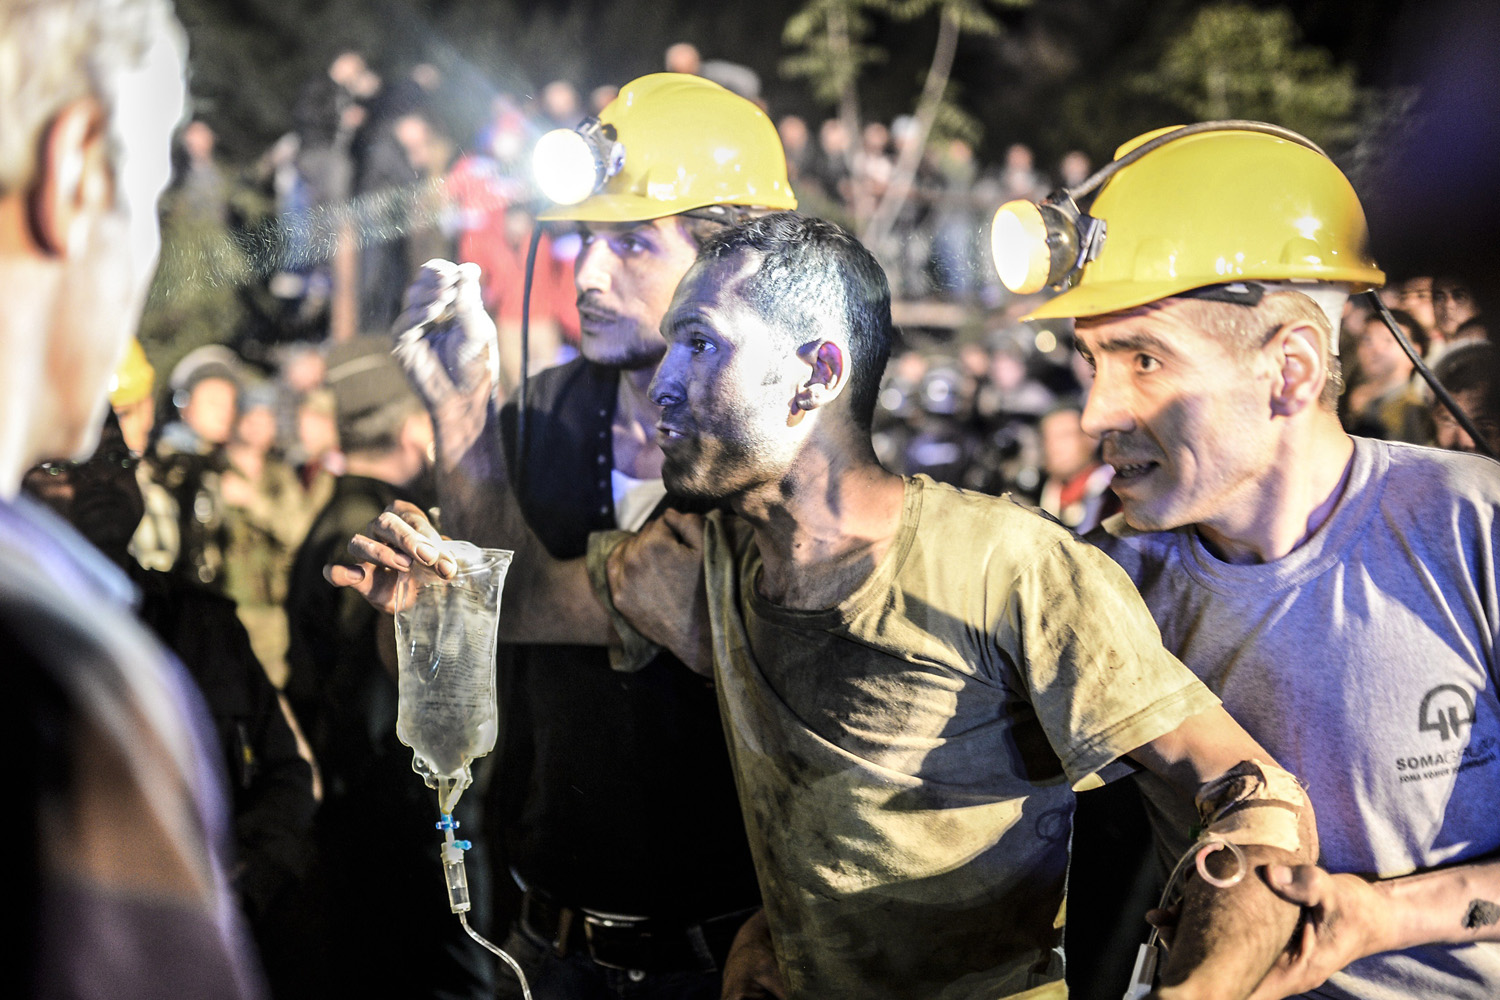 A miner came out helped by friends after an explosion in Manisa, Turkey, May 13, 2014.